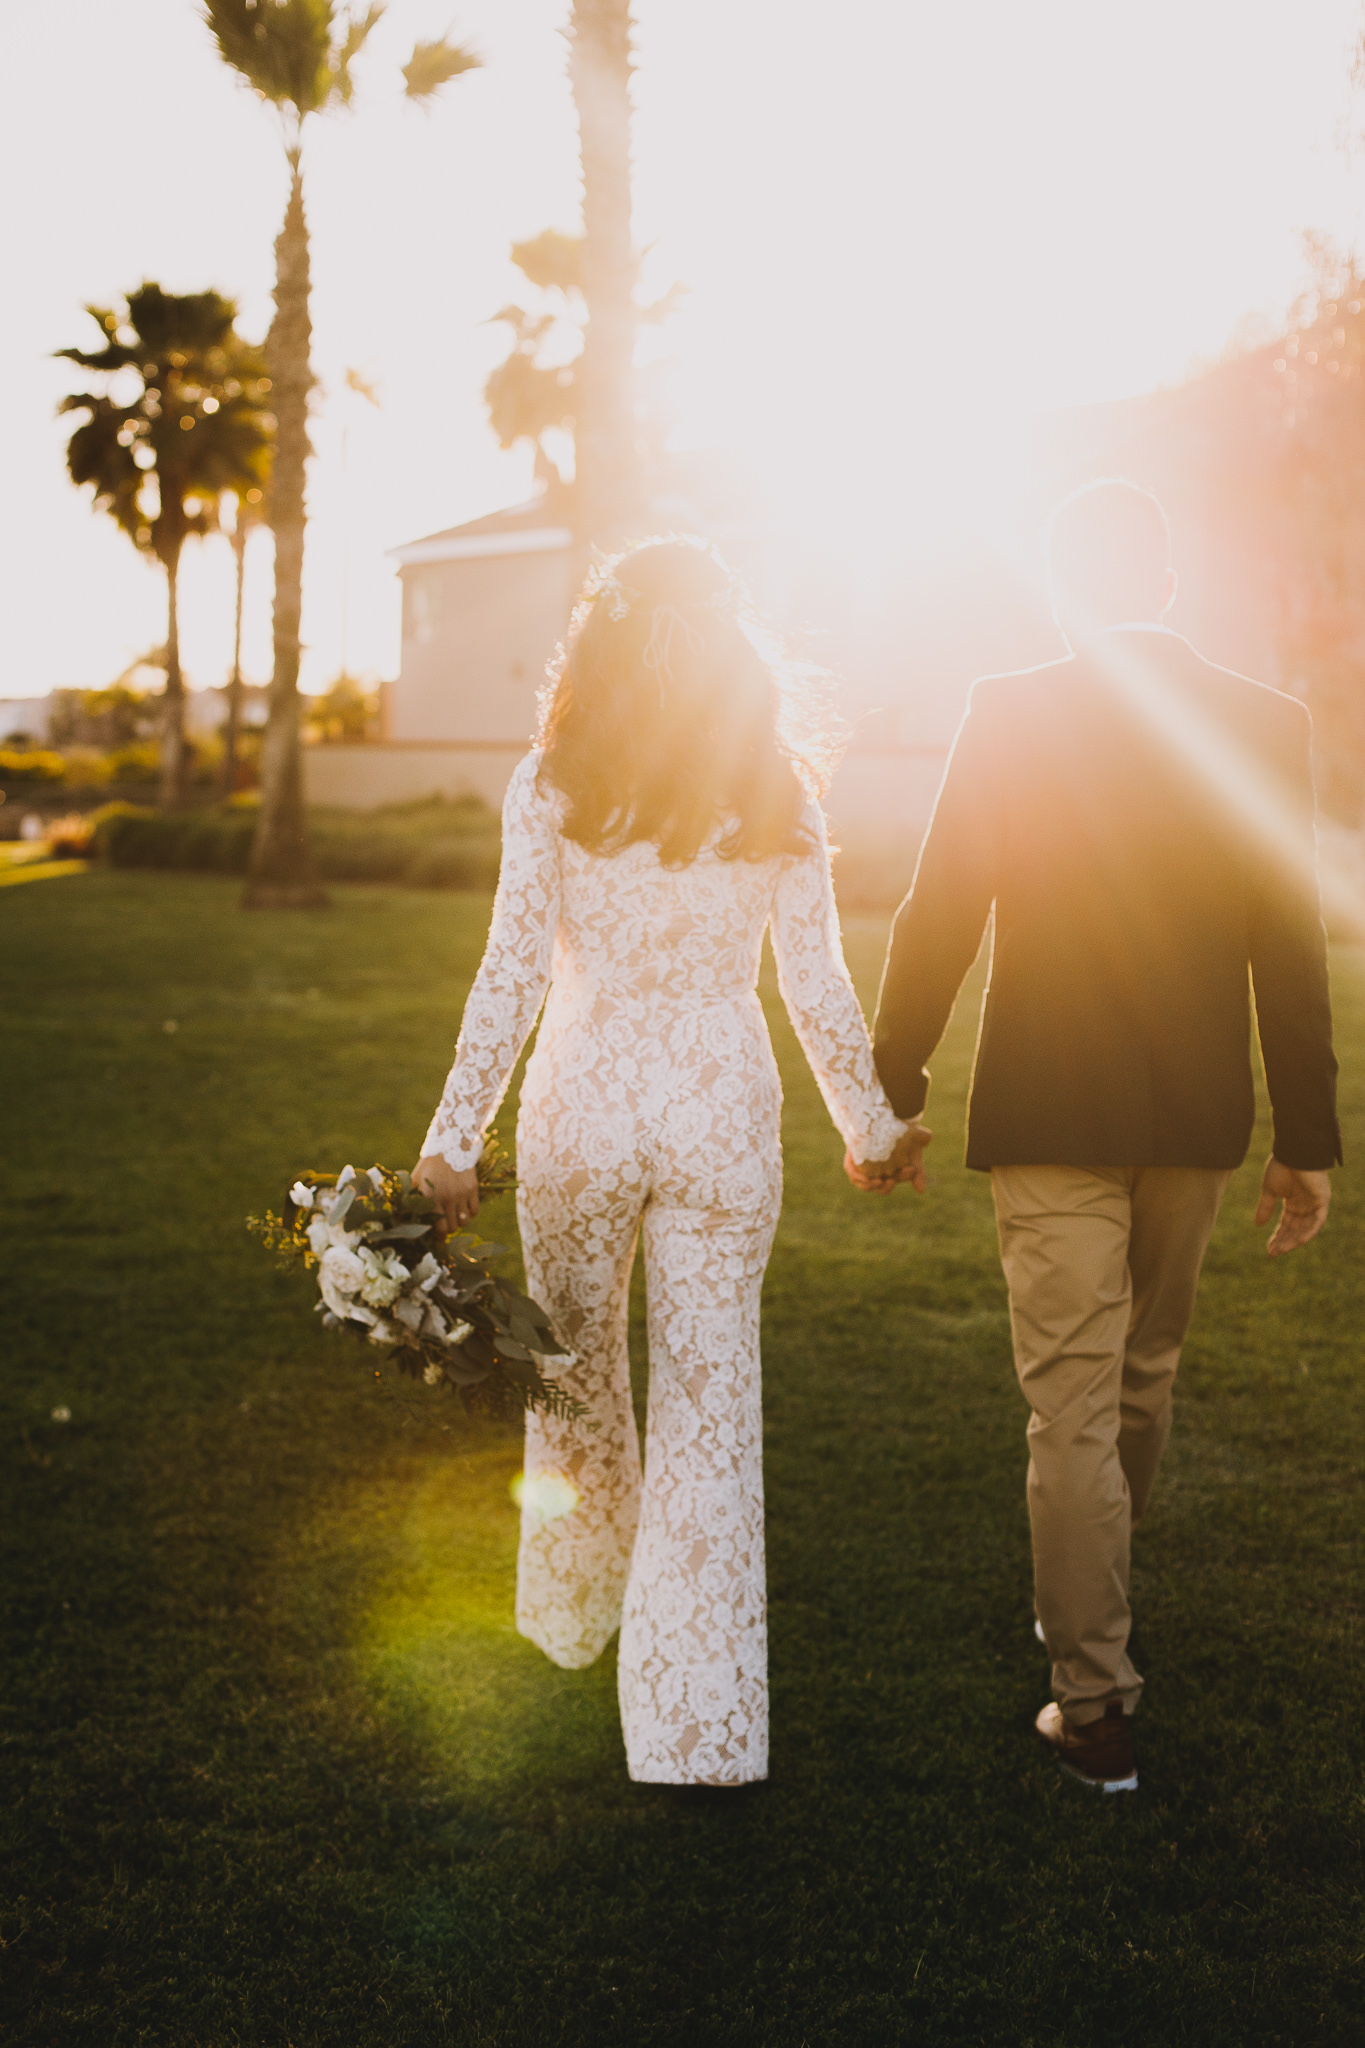 Archer Inspired Photography Lauren and Derek Long Beach Orange County Wedding Elopement-216.jpg